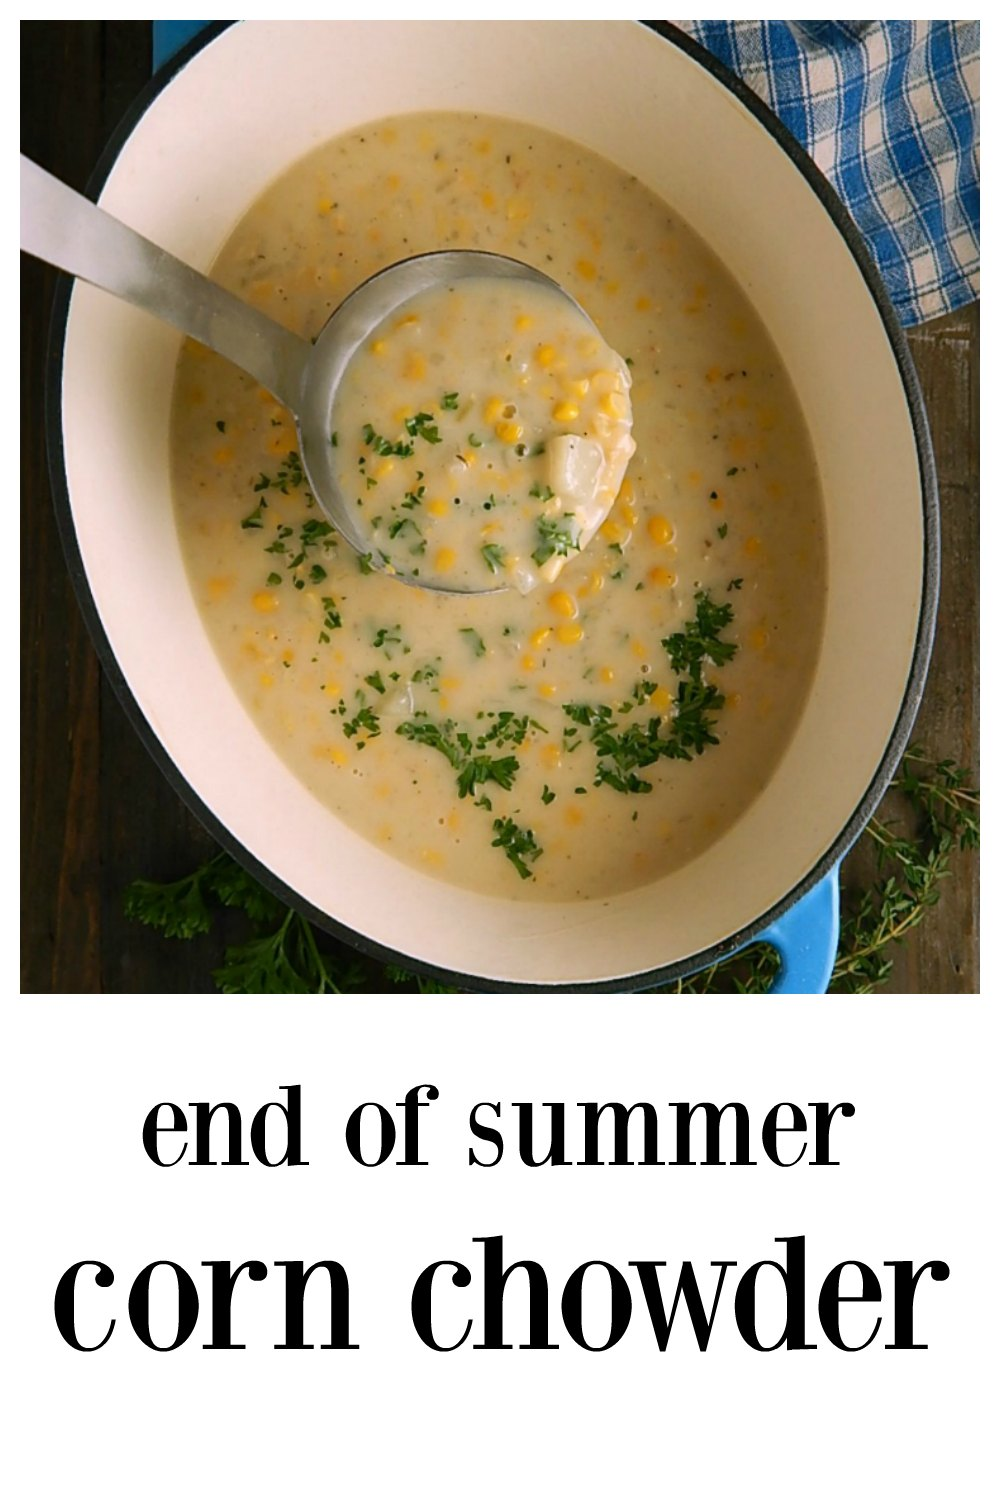 End of Summer Corn Chowder is truly the classic old school corn chowder. Simple flavors let the corn shine and cream make it luscious. #CornChowder #ClassicCornChowder #CornChowderCream